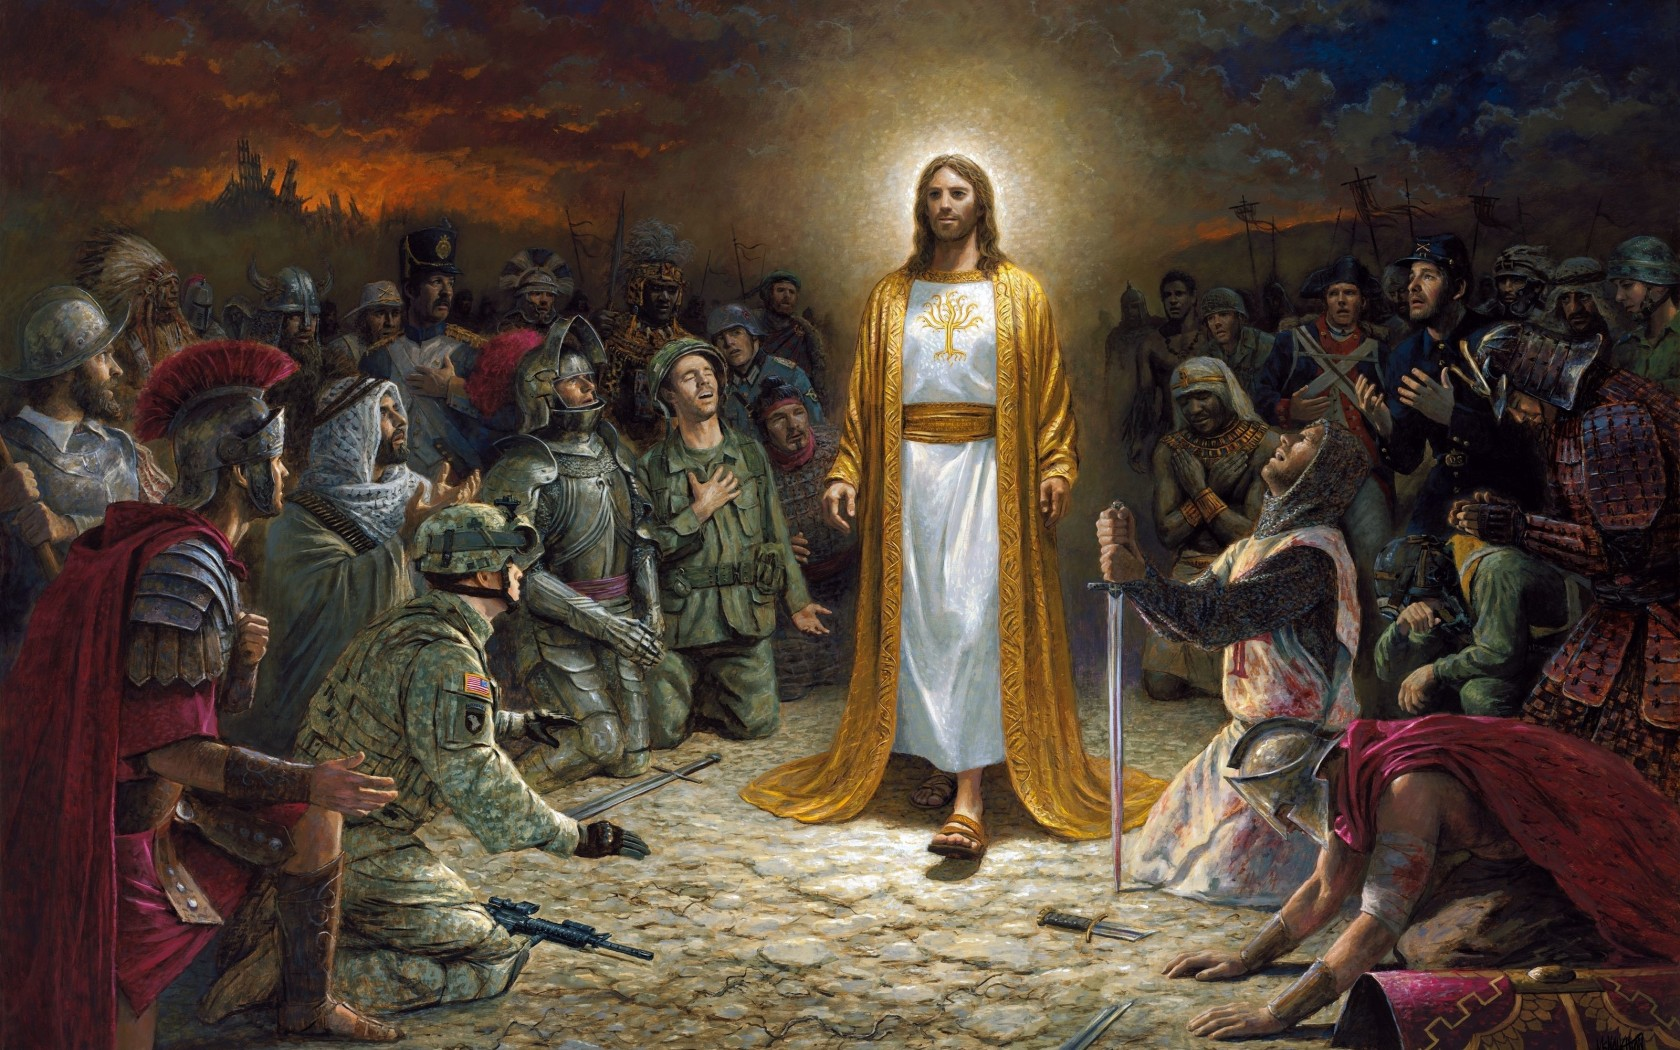 http://darnellbarkman.com/wp-content/uploads/2015/04/Jesus-Christ-Wallpaper-salvation-soldiers-all-nations-beg-Jesus.jpg